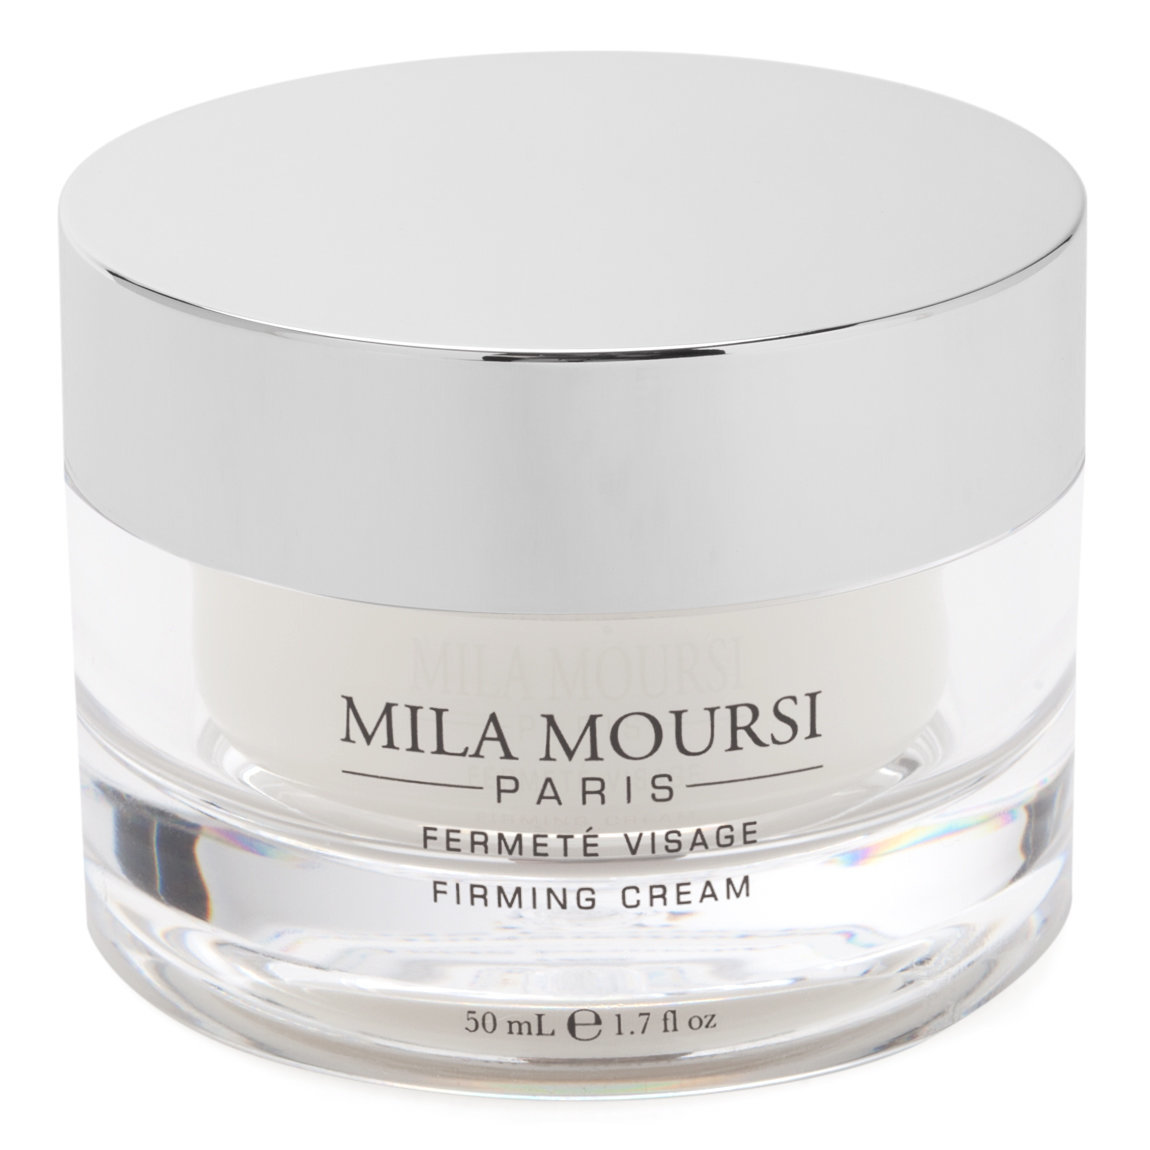 Mila Moursi Firming Cream product swatch.